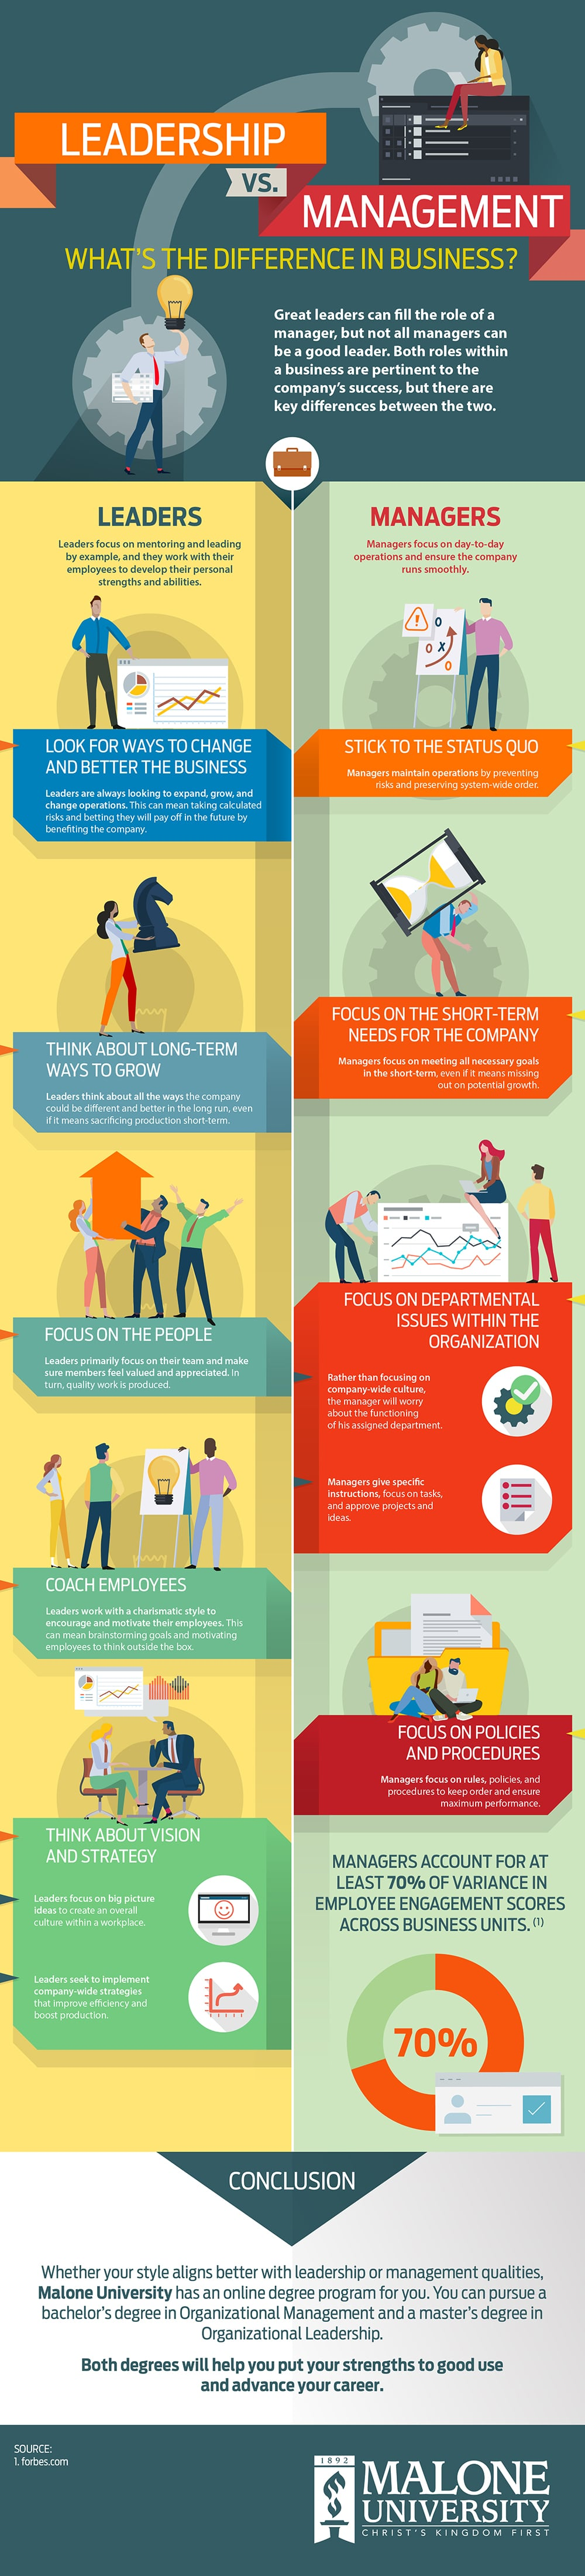 Leadership vs Management Infographic Image